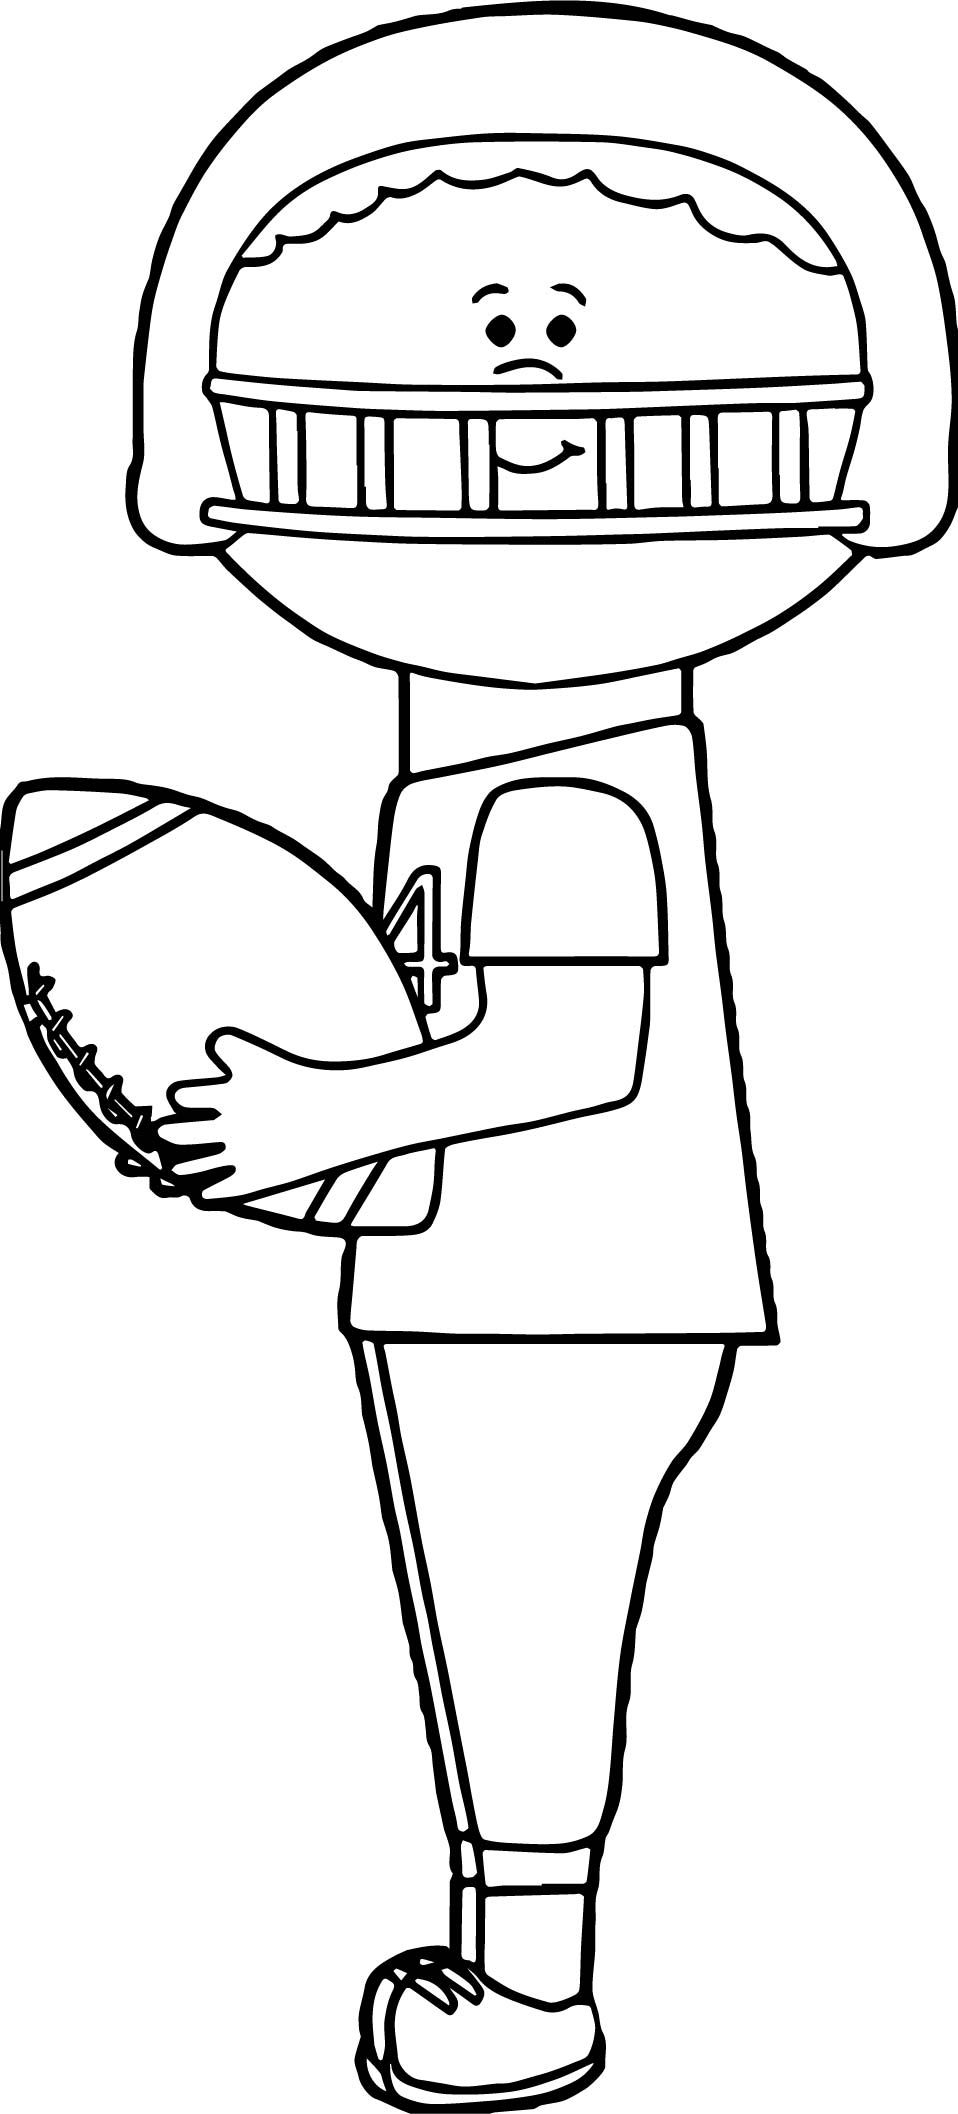 Kid Catching Playing Football Coloring Page